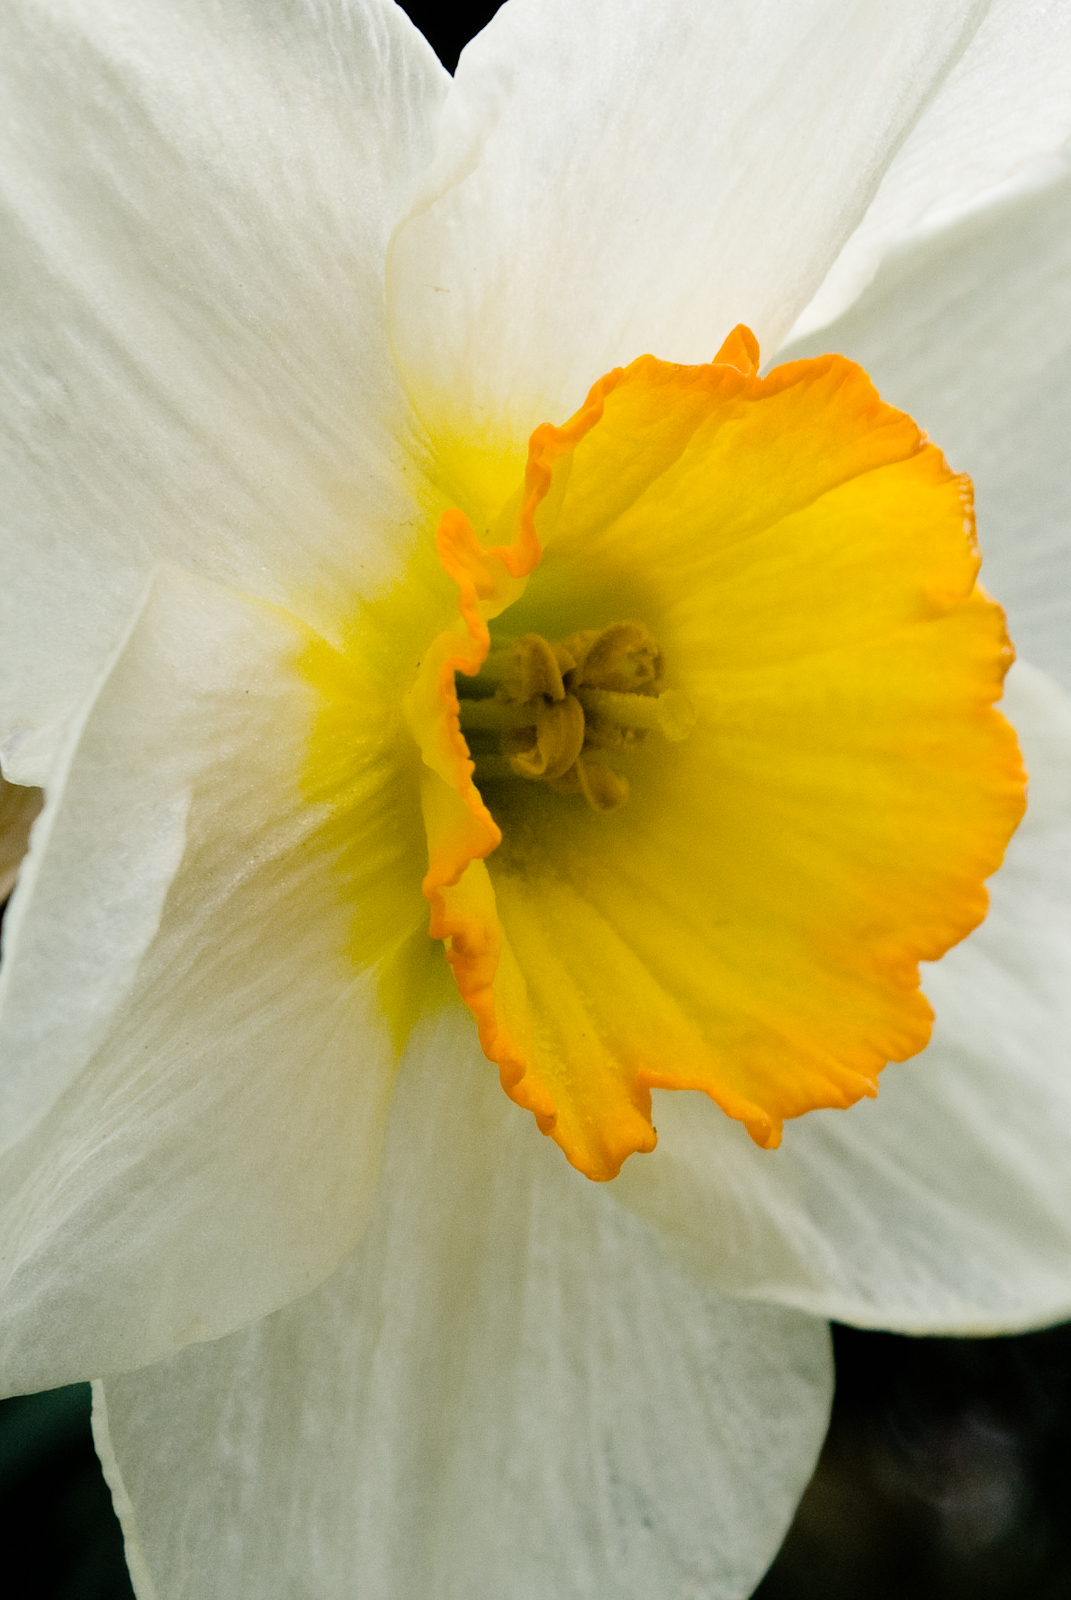 Flowers World Daffodil White Petals Yellow Cup